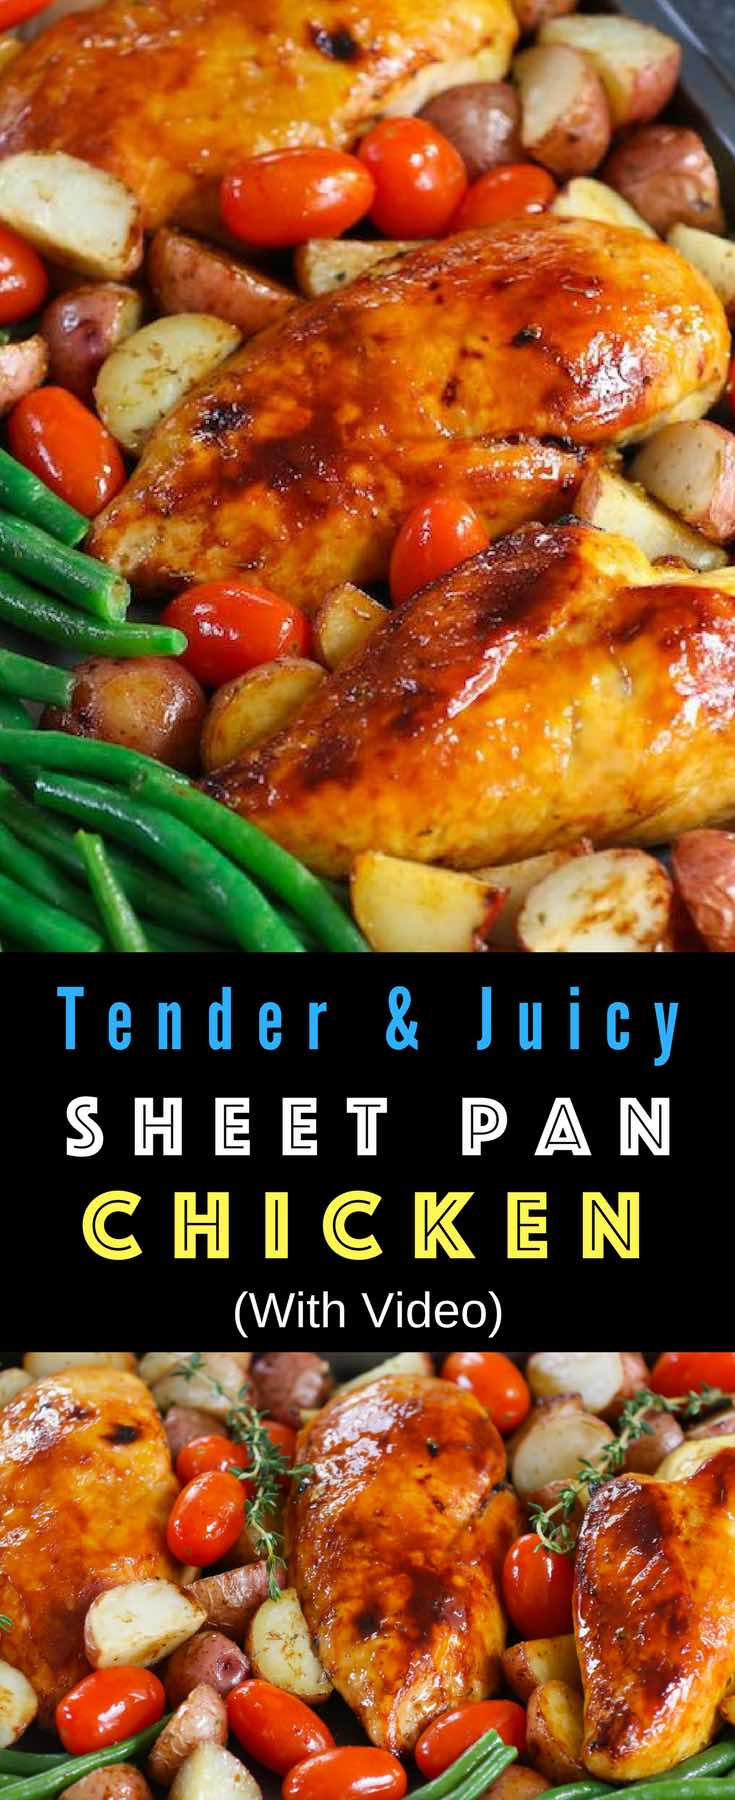 One Pan Baked Chicken With Potatoes, Green Beans and Cherry Tomatoes - Tender and juicy chicken breasts baked with vegetables in a sheet pan. A quick and healthy dinner that's super easy to make. It takes only about 30 minutes. Quick and Easy Dinner, healthy, Sheet Pan recipe. Video recipe. | Tipbuzz.com #BakedChicken #SheetpanChicken